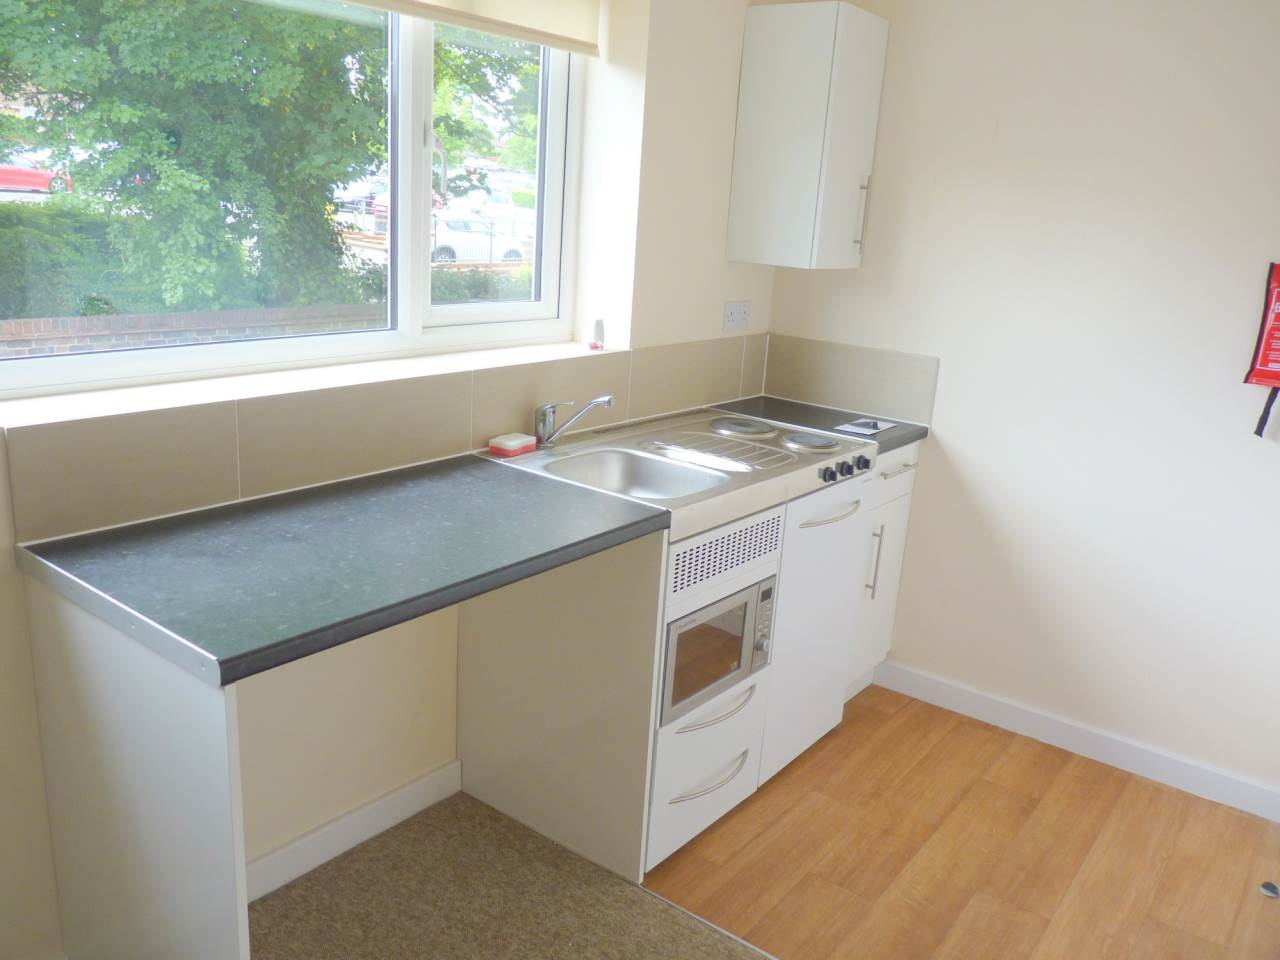 1 bed flat to rent in Haverhill 2